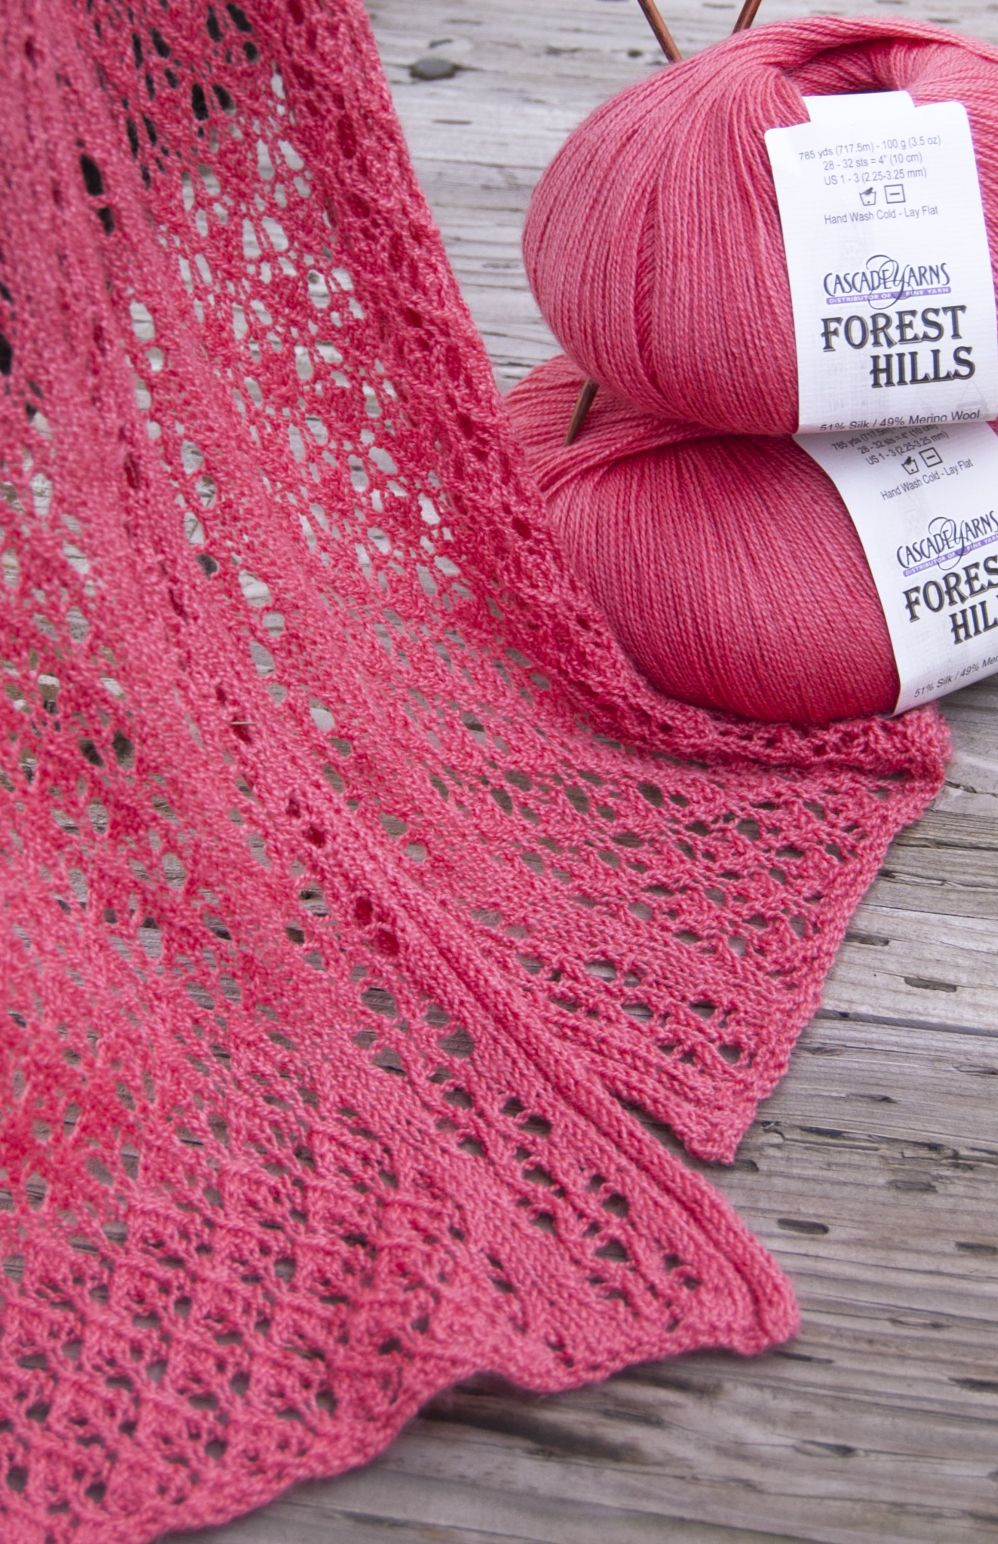 Free pattern highlight — Cascade Yarns Forest Hills Lace Scarf knit ...